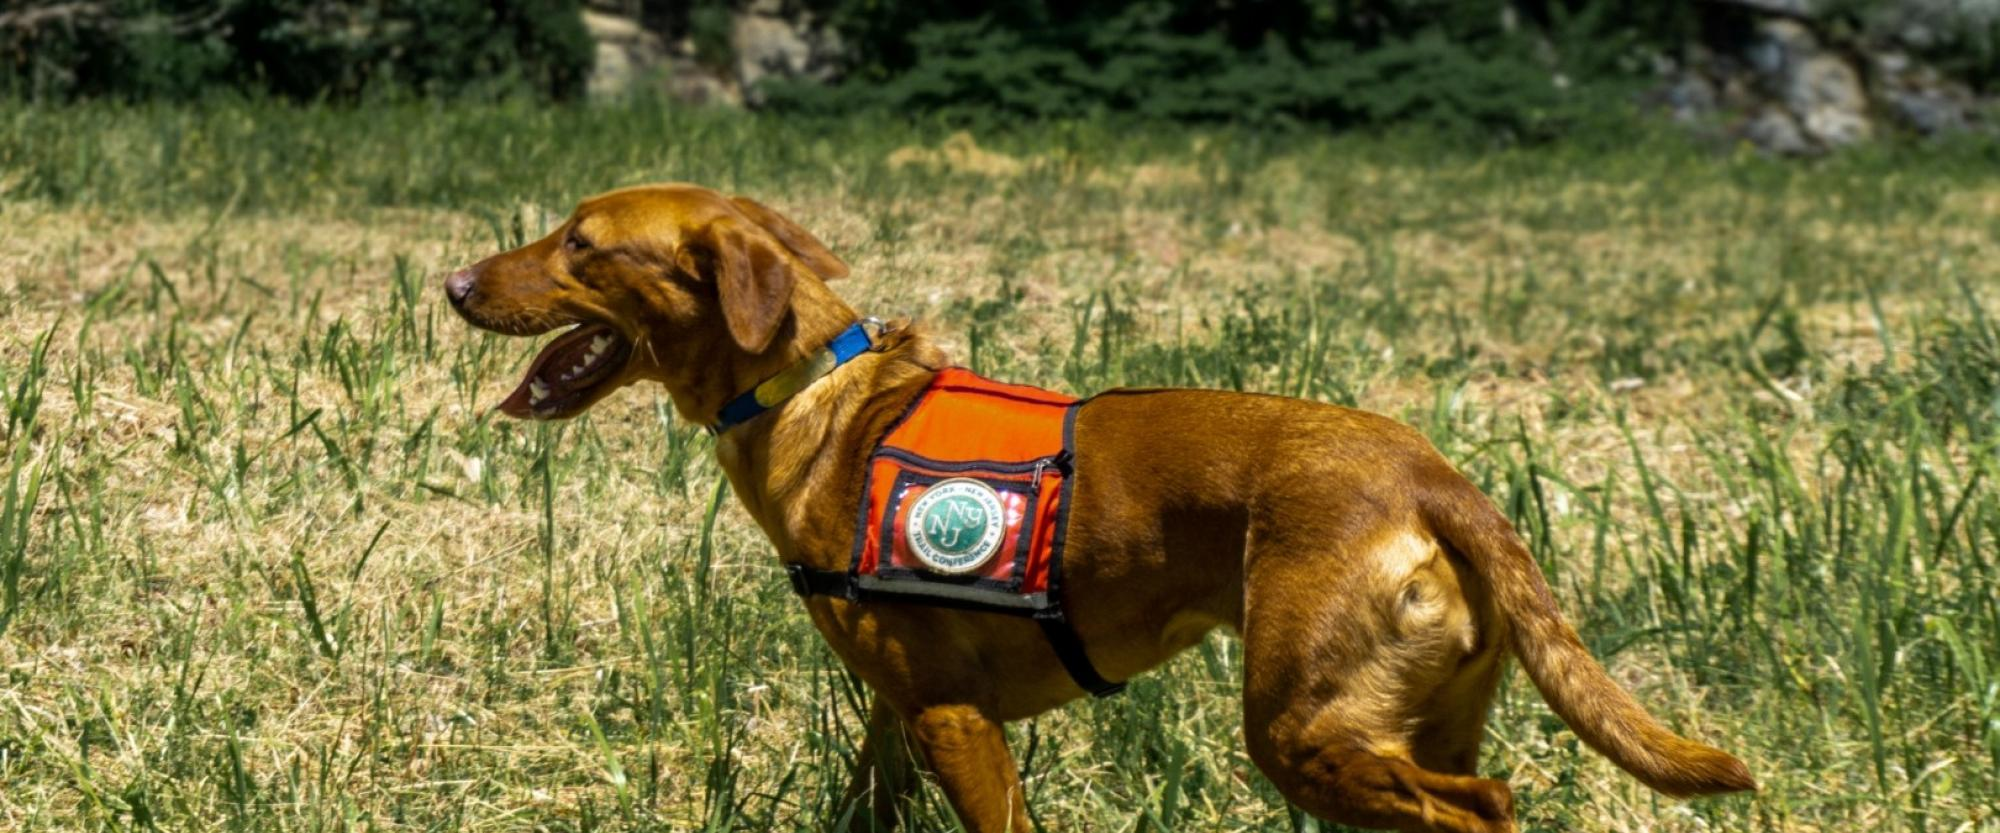 Dia the Conservation Detection Dog. Photo by Arden Blumenthal.